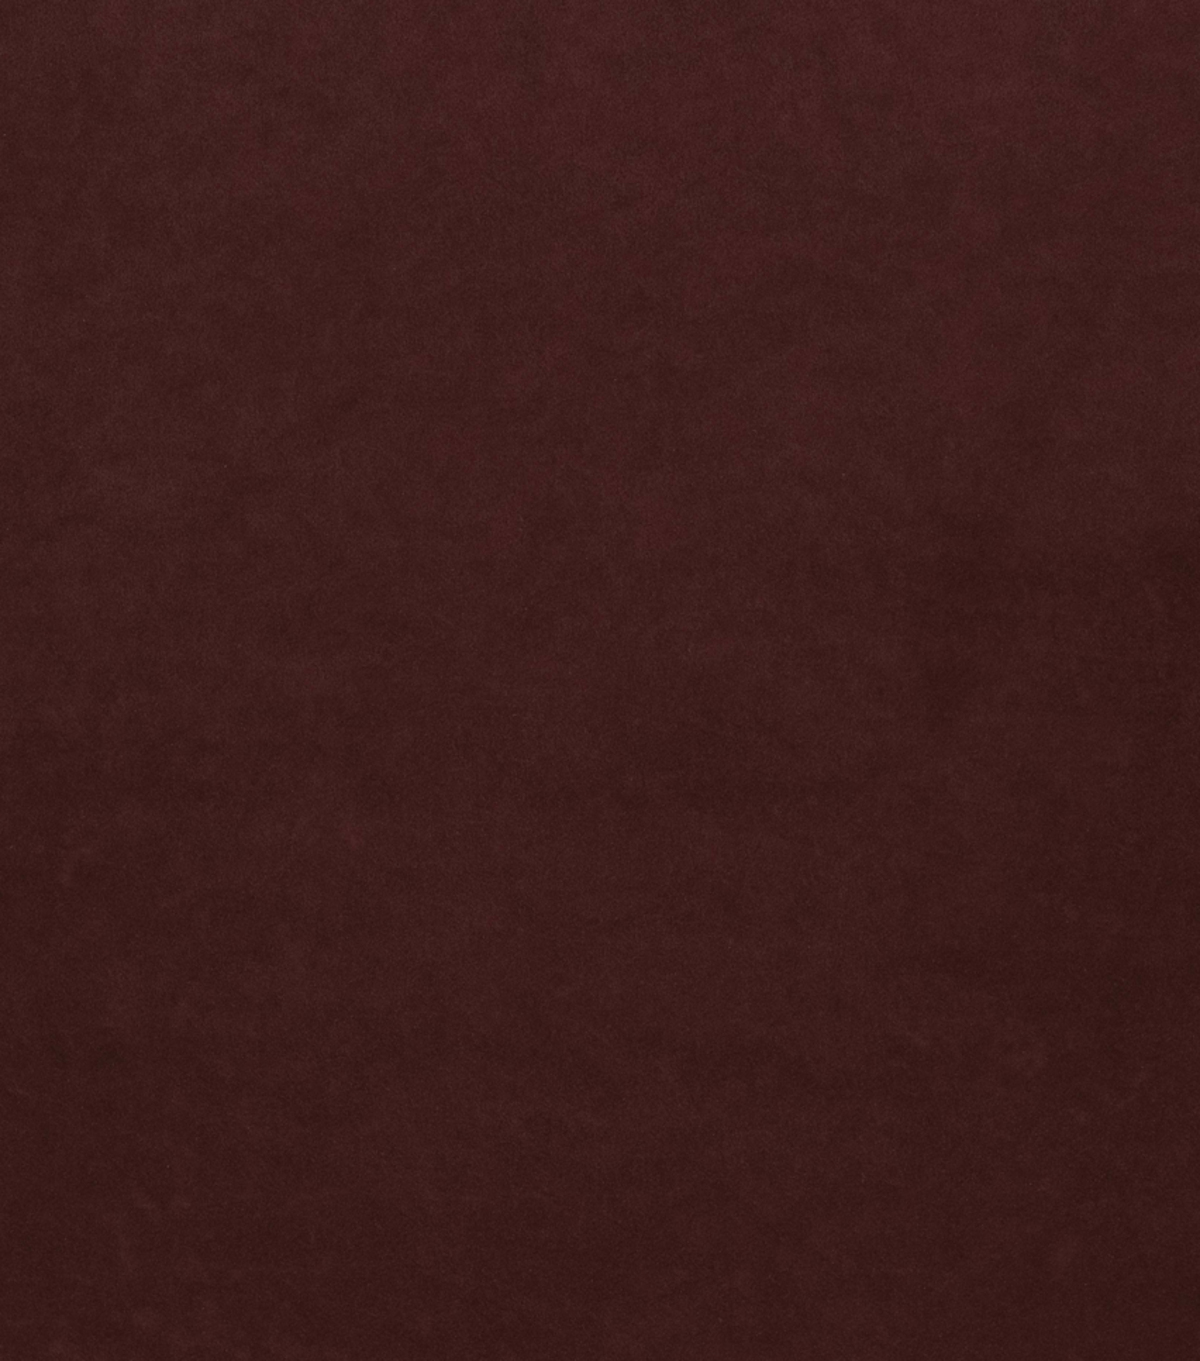 Home Decor 8\u0022x8\u0022 Fabric Swatch-Suede Burgundy